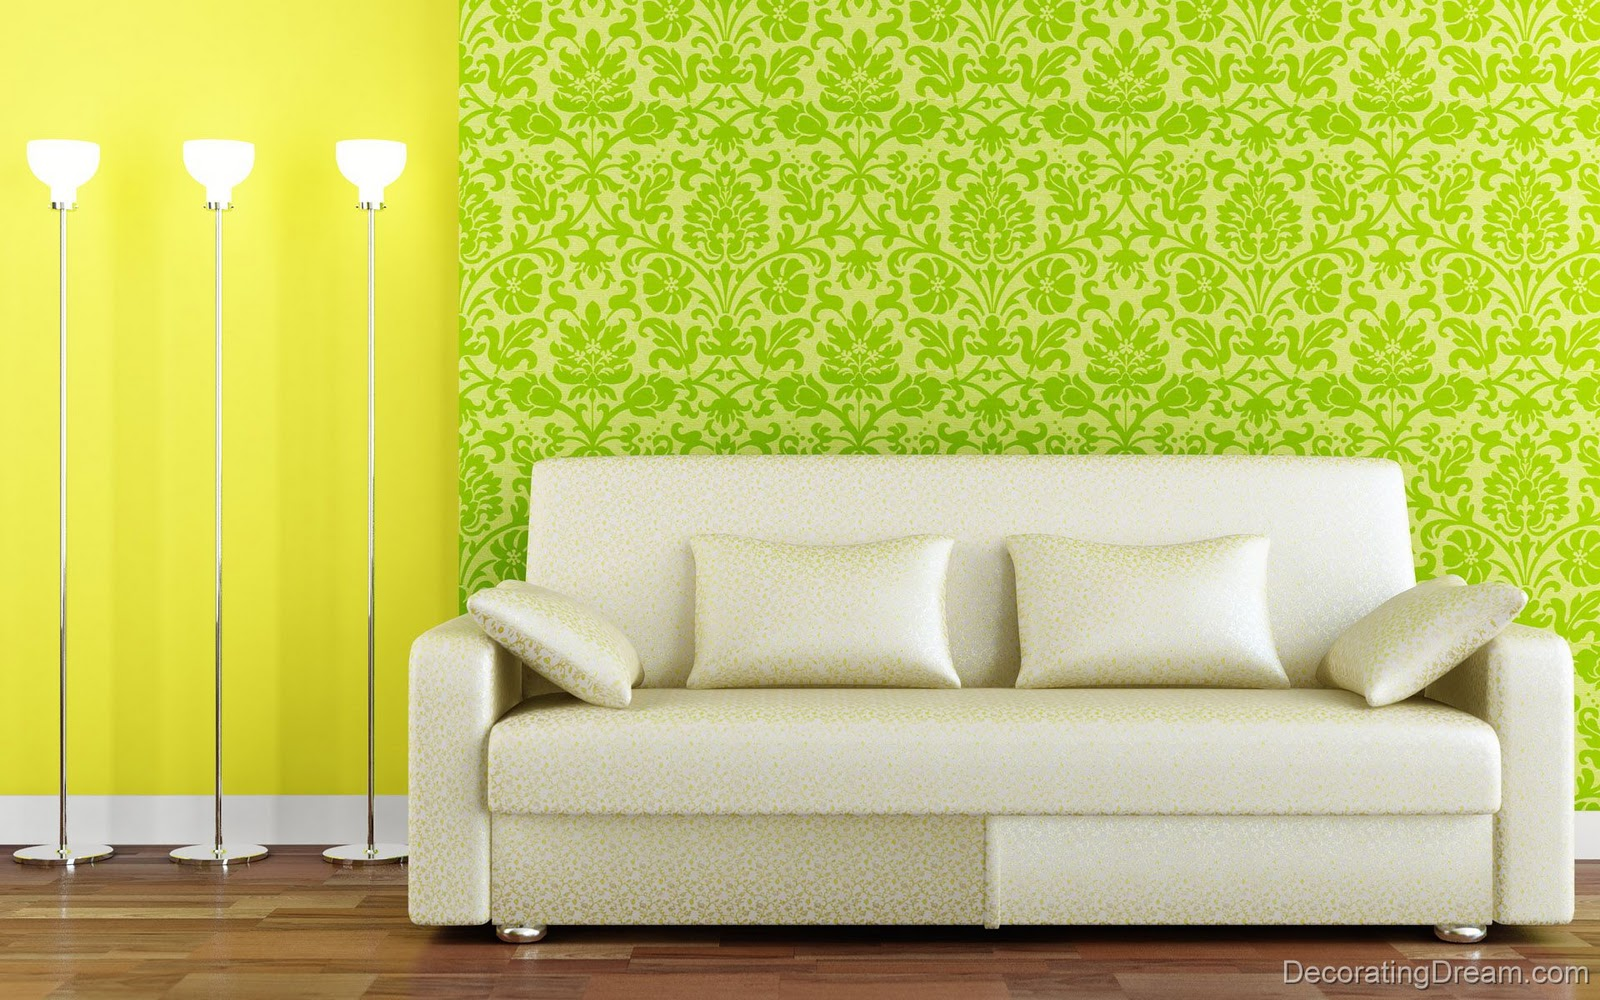 http://2.bp.blogspot.com/-3knSew03wi8/TuAY2wl8m8I/AAAAAAAABSo/Rd8D3WagPsQ/s1600/Sea-Green-Living-Room-Wallpaper-and-White-Sofa-Designs.jpg